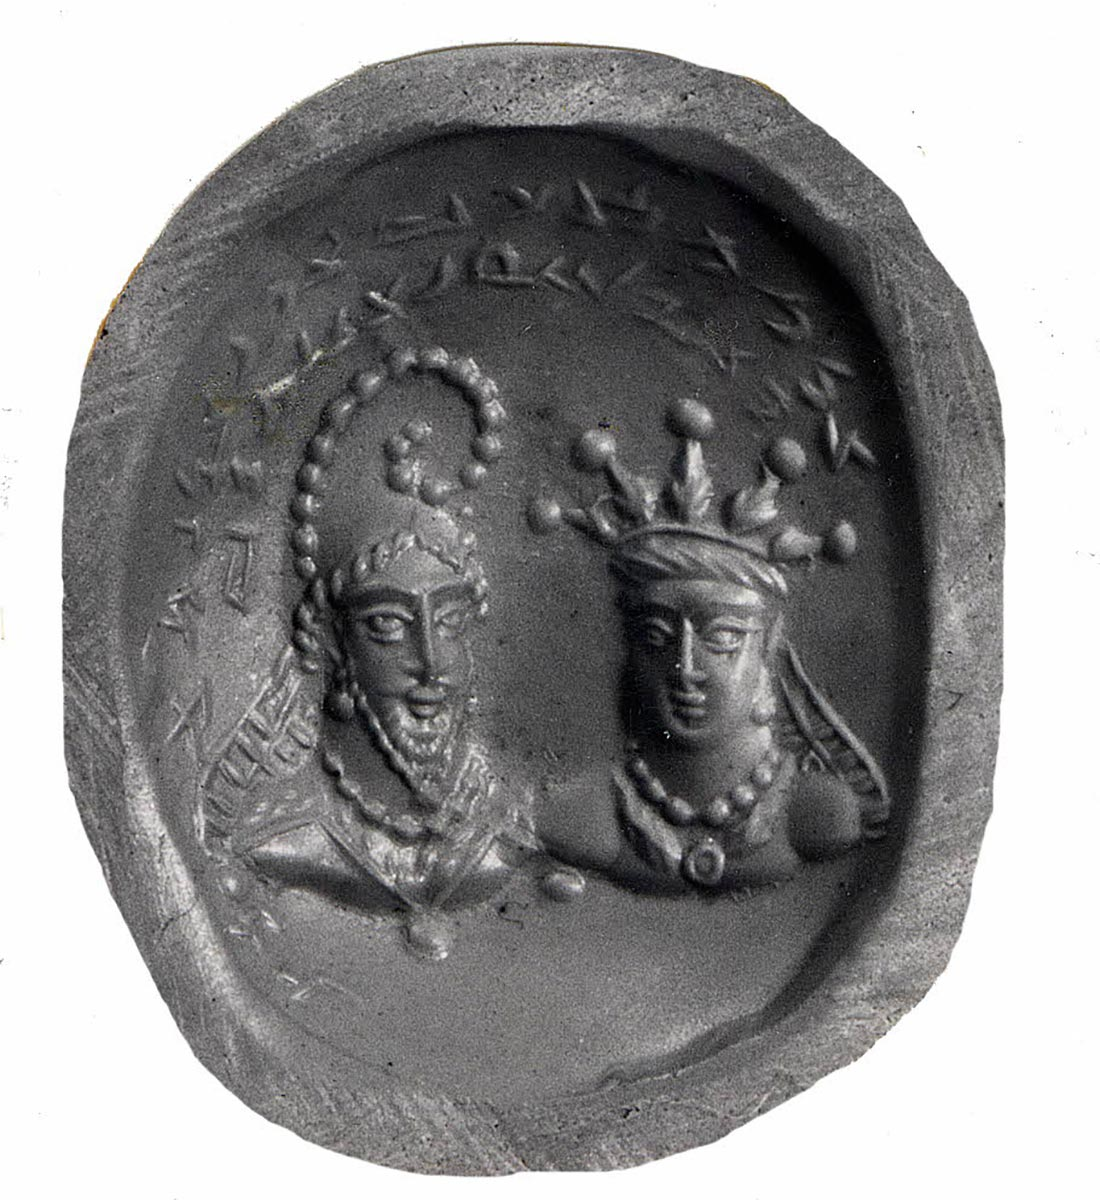 oval seal impression with two crowned figures under inscription